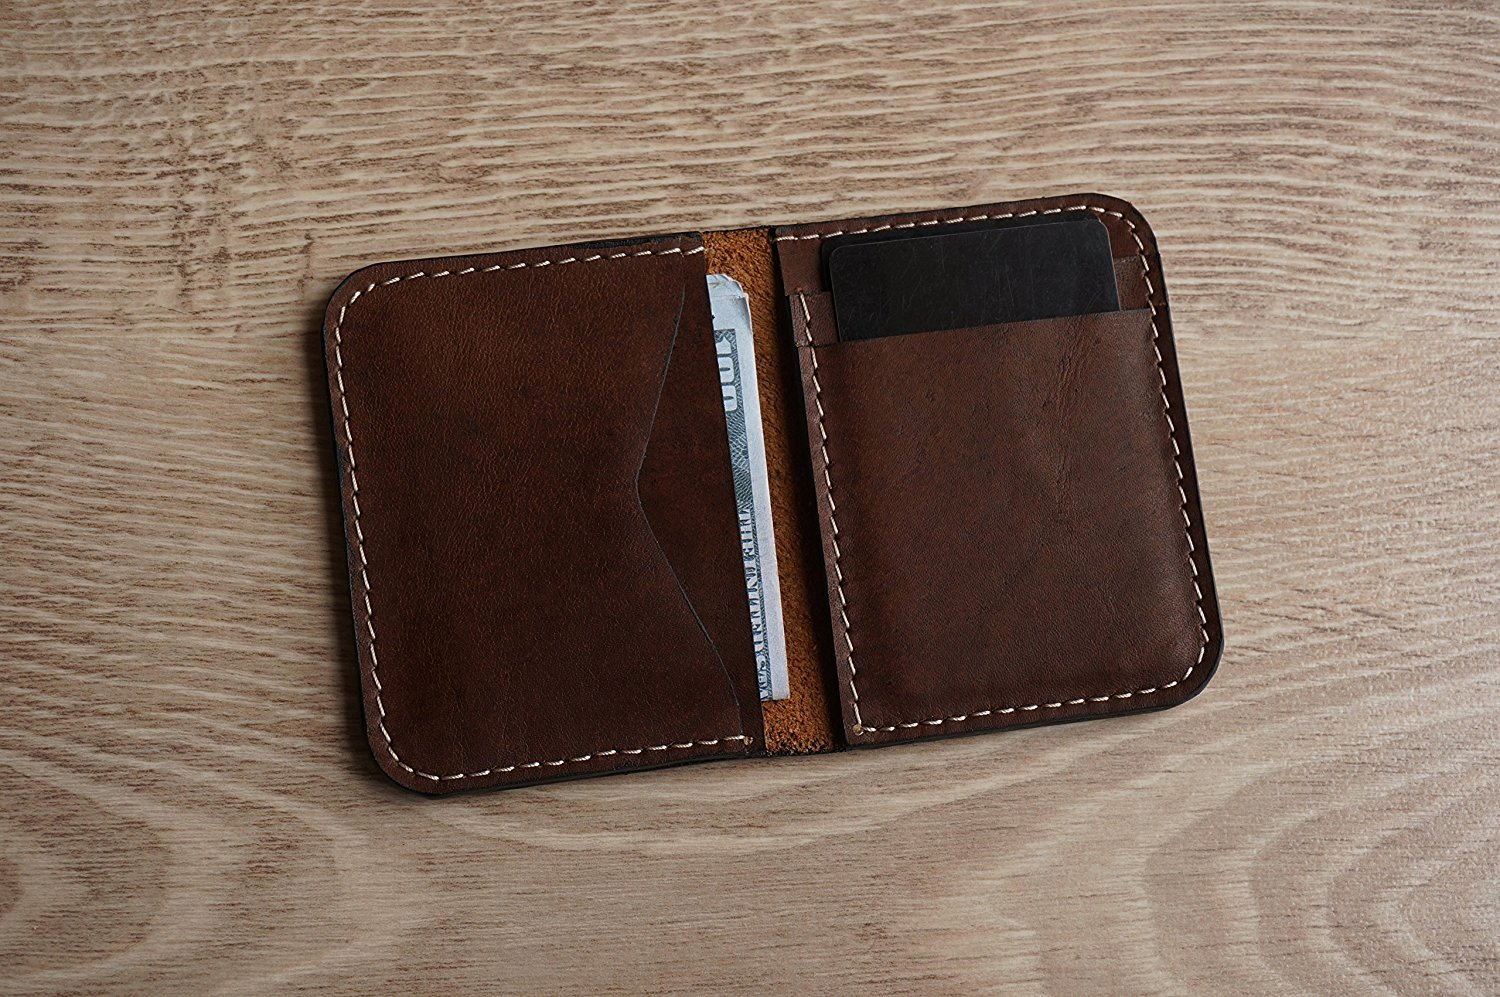 Brown leather card holder & wallet in one. Genuine crazy horse slim card holder in a minimalist design. Tiny card holder to slip in a front pocket